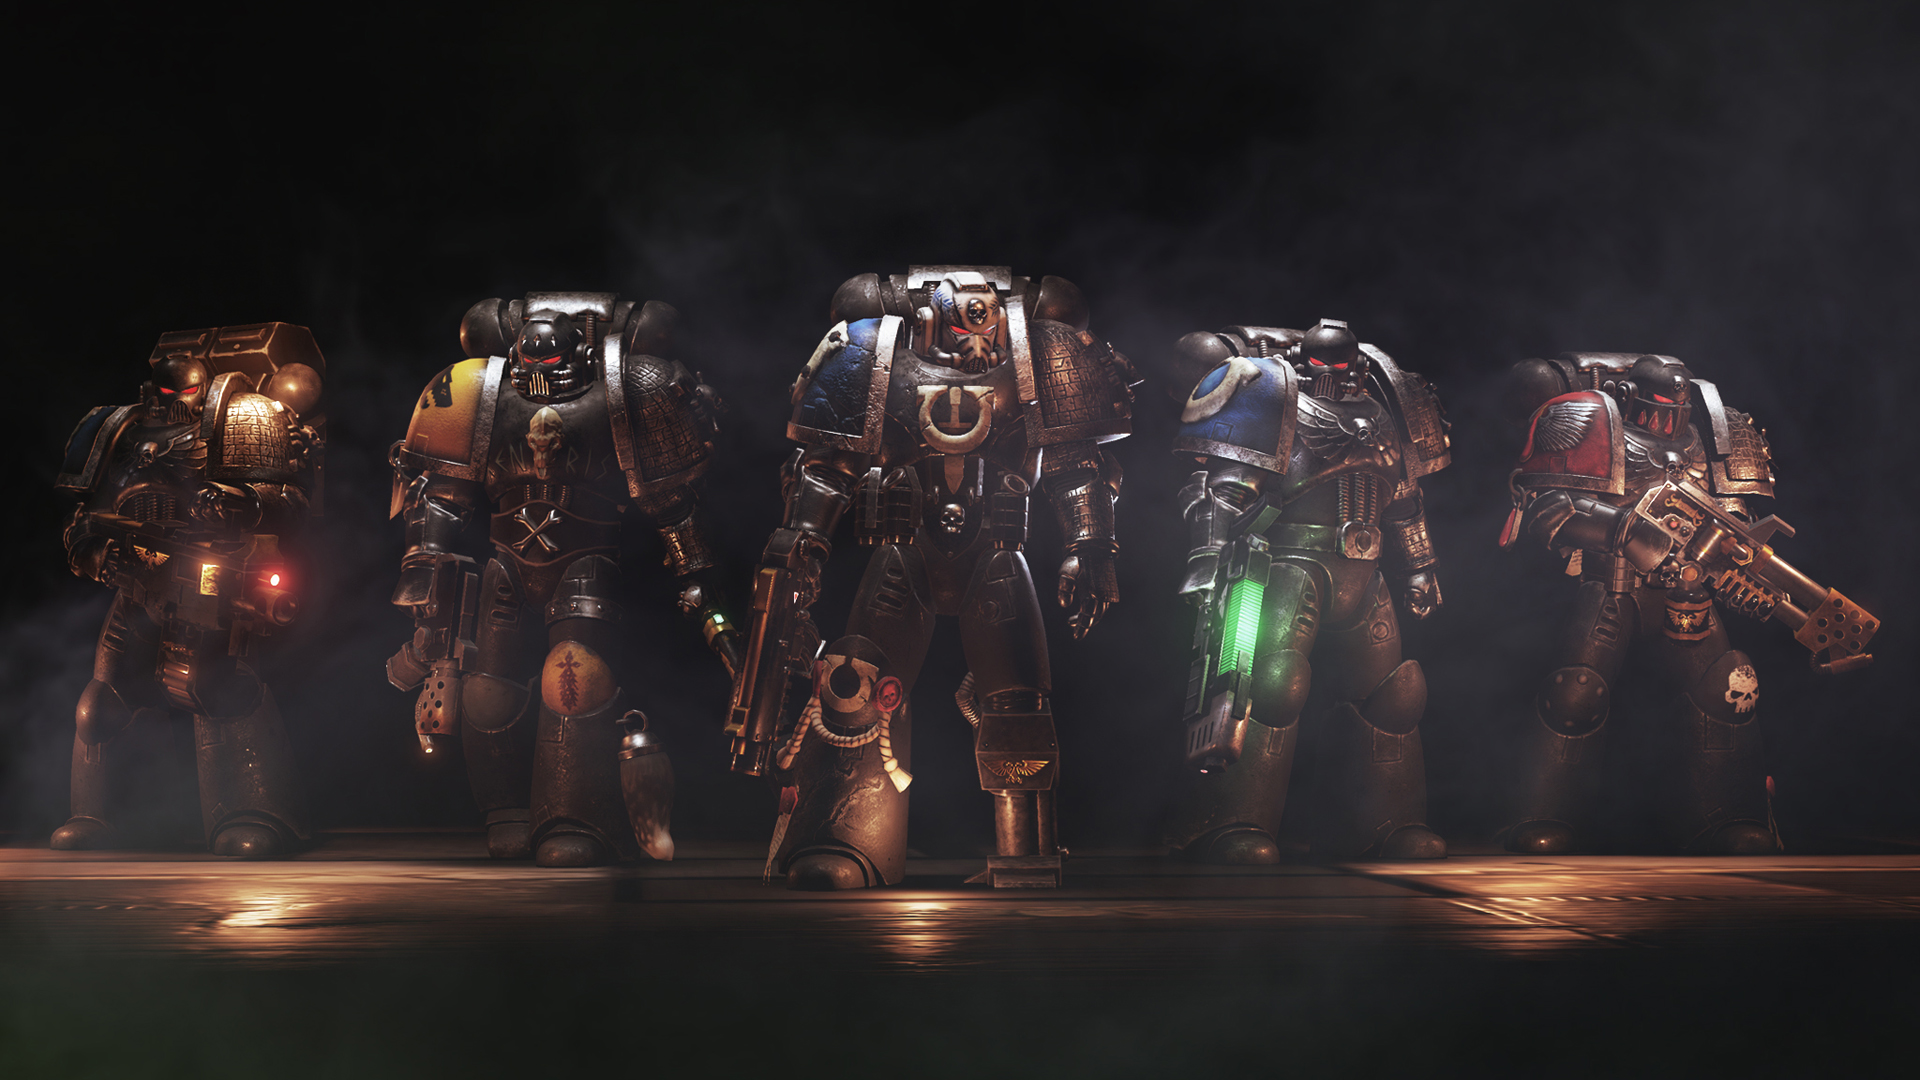 Ps4 Wallpaper Hd Warhammer 40 000 Deathwatch Coming To Playstation 4 In